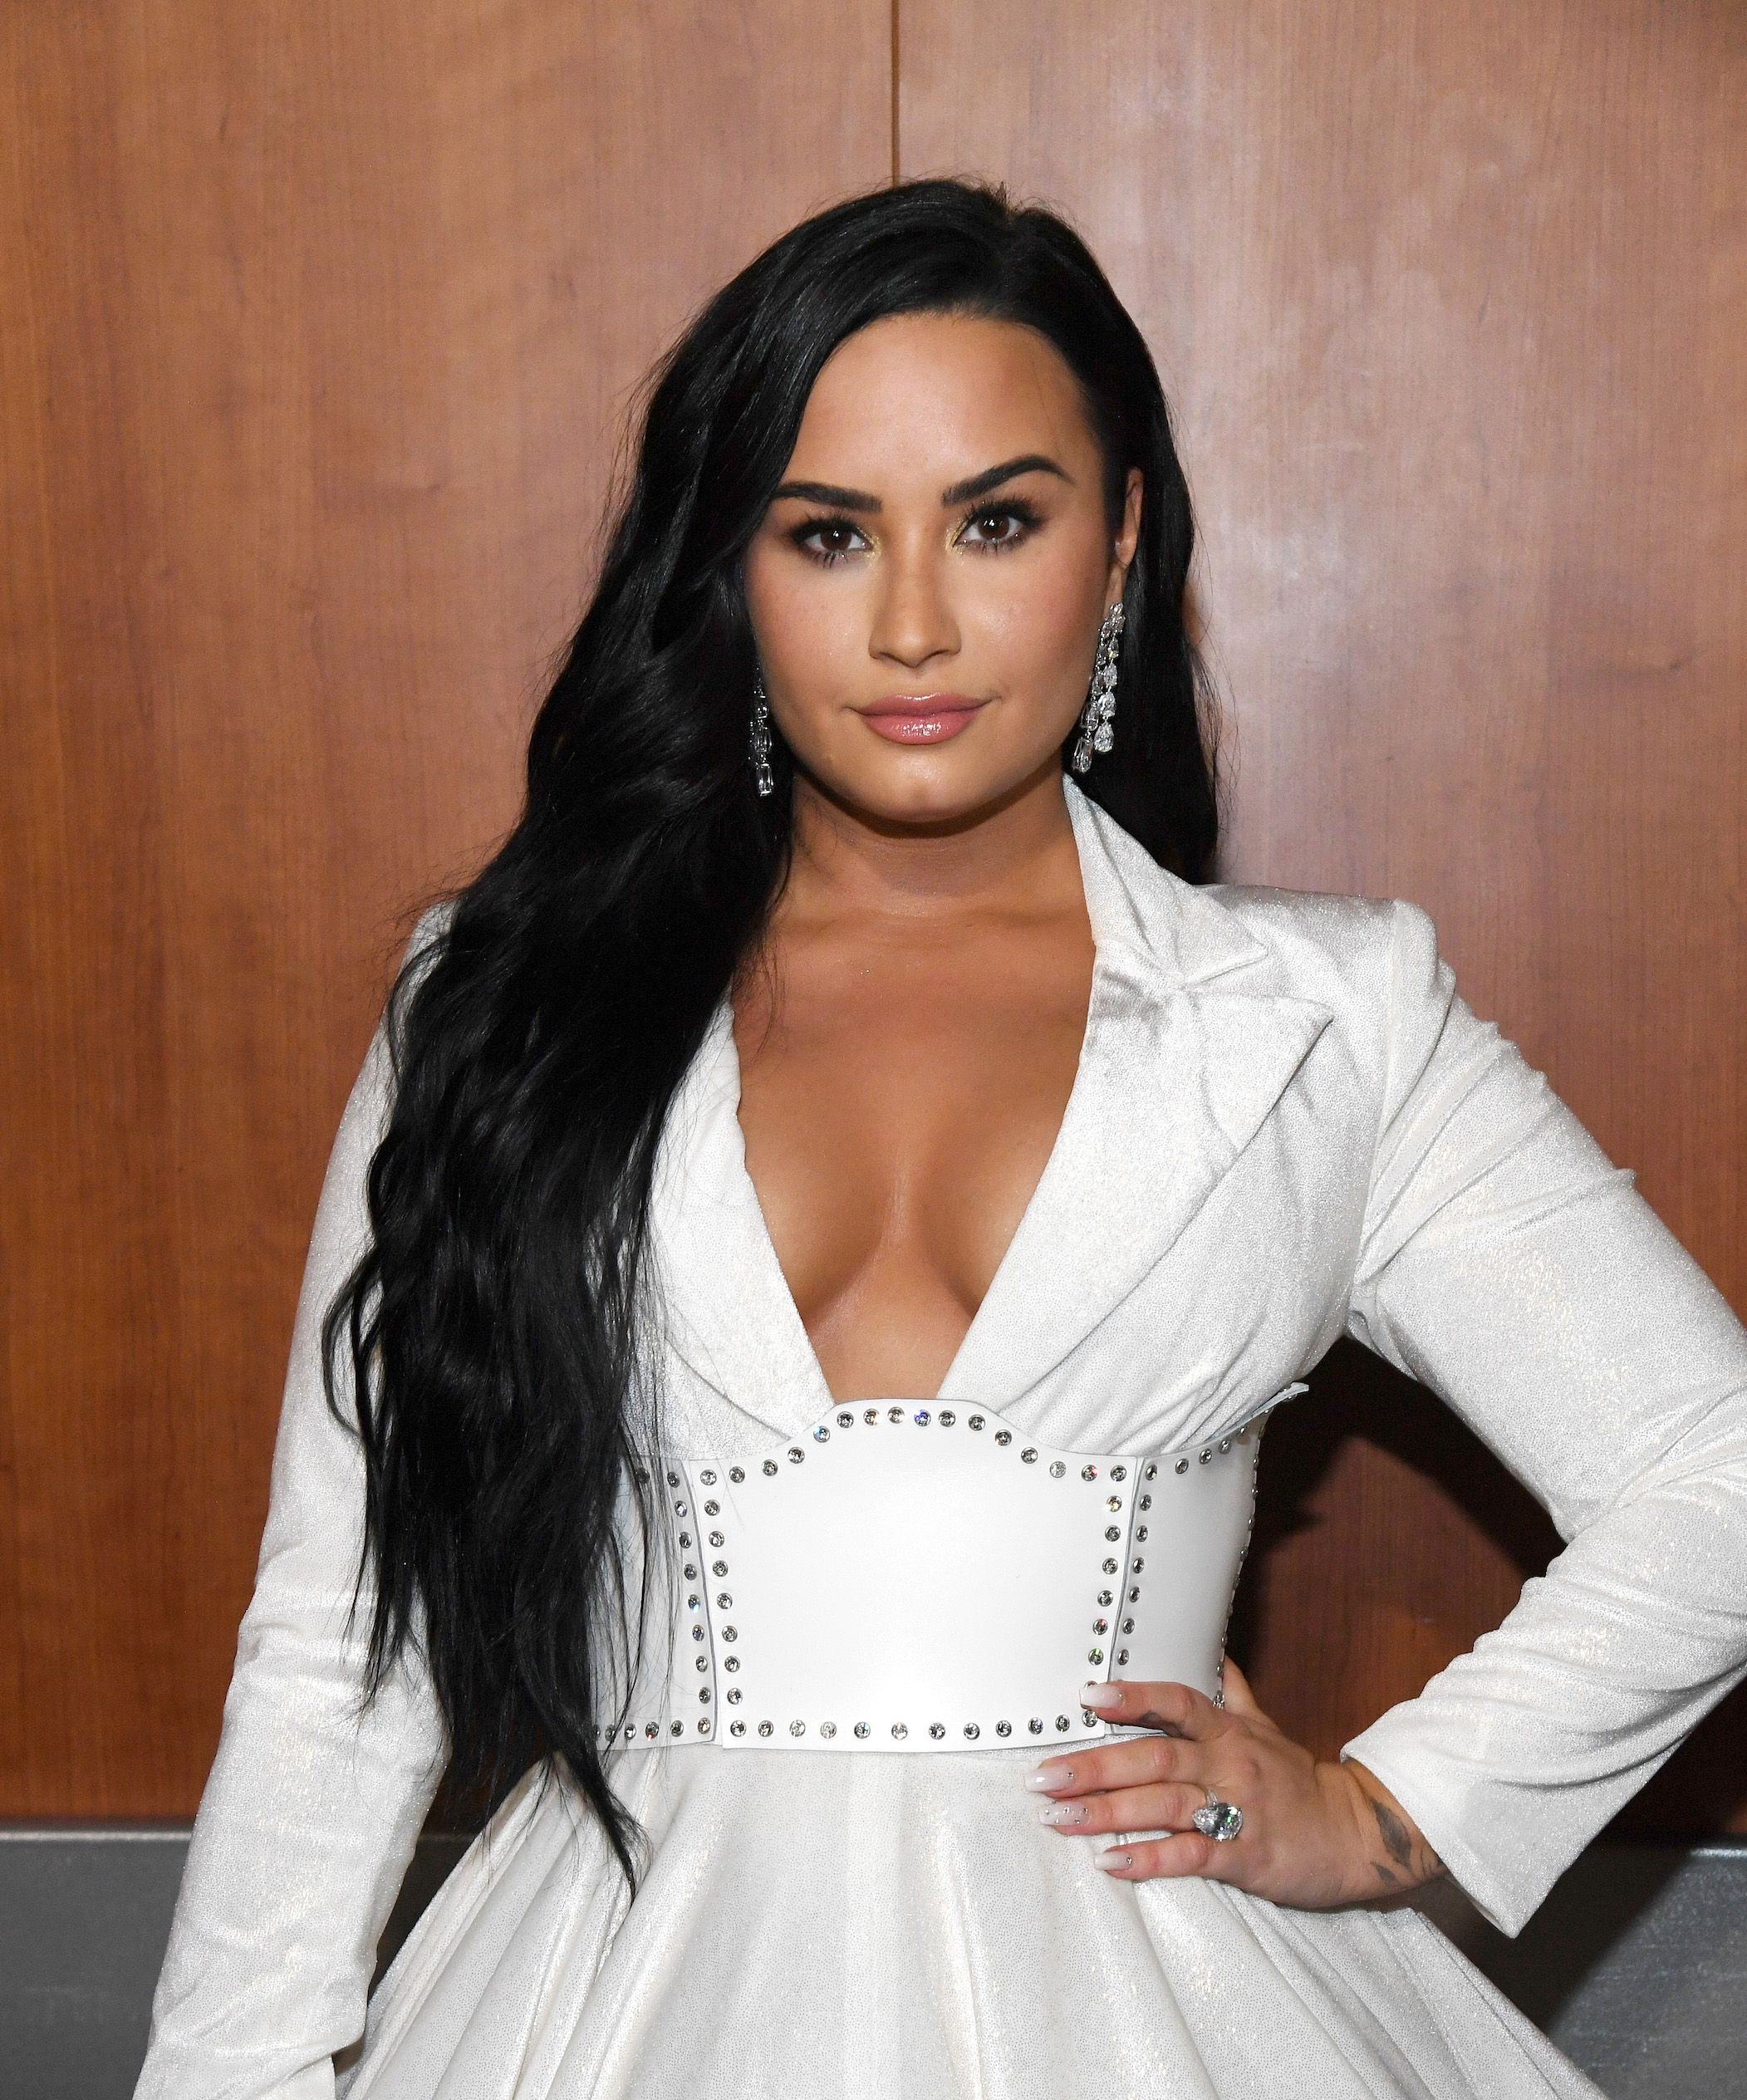 Demi Lovato Had A Heart Attack And Strokes After 2018 Overdose